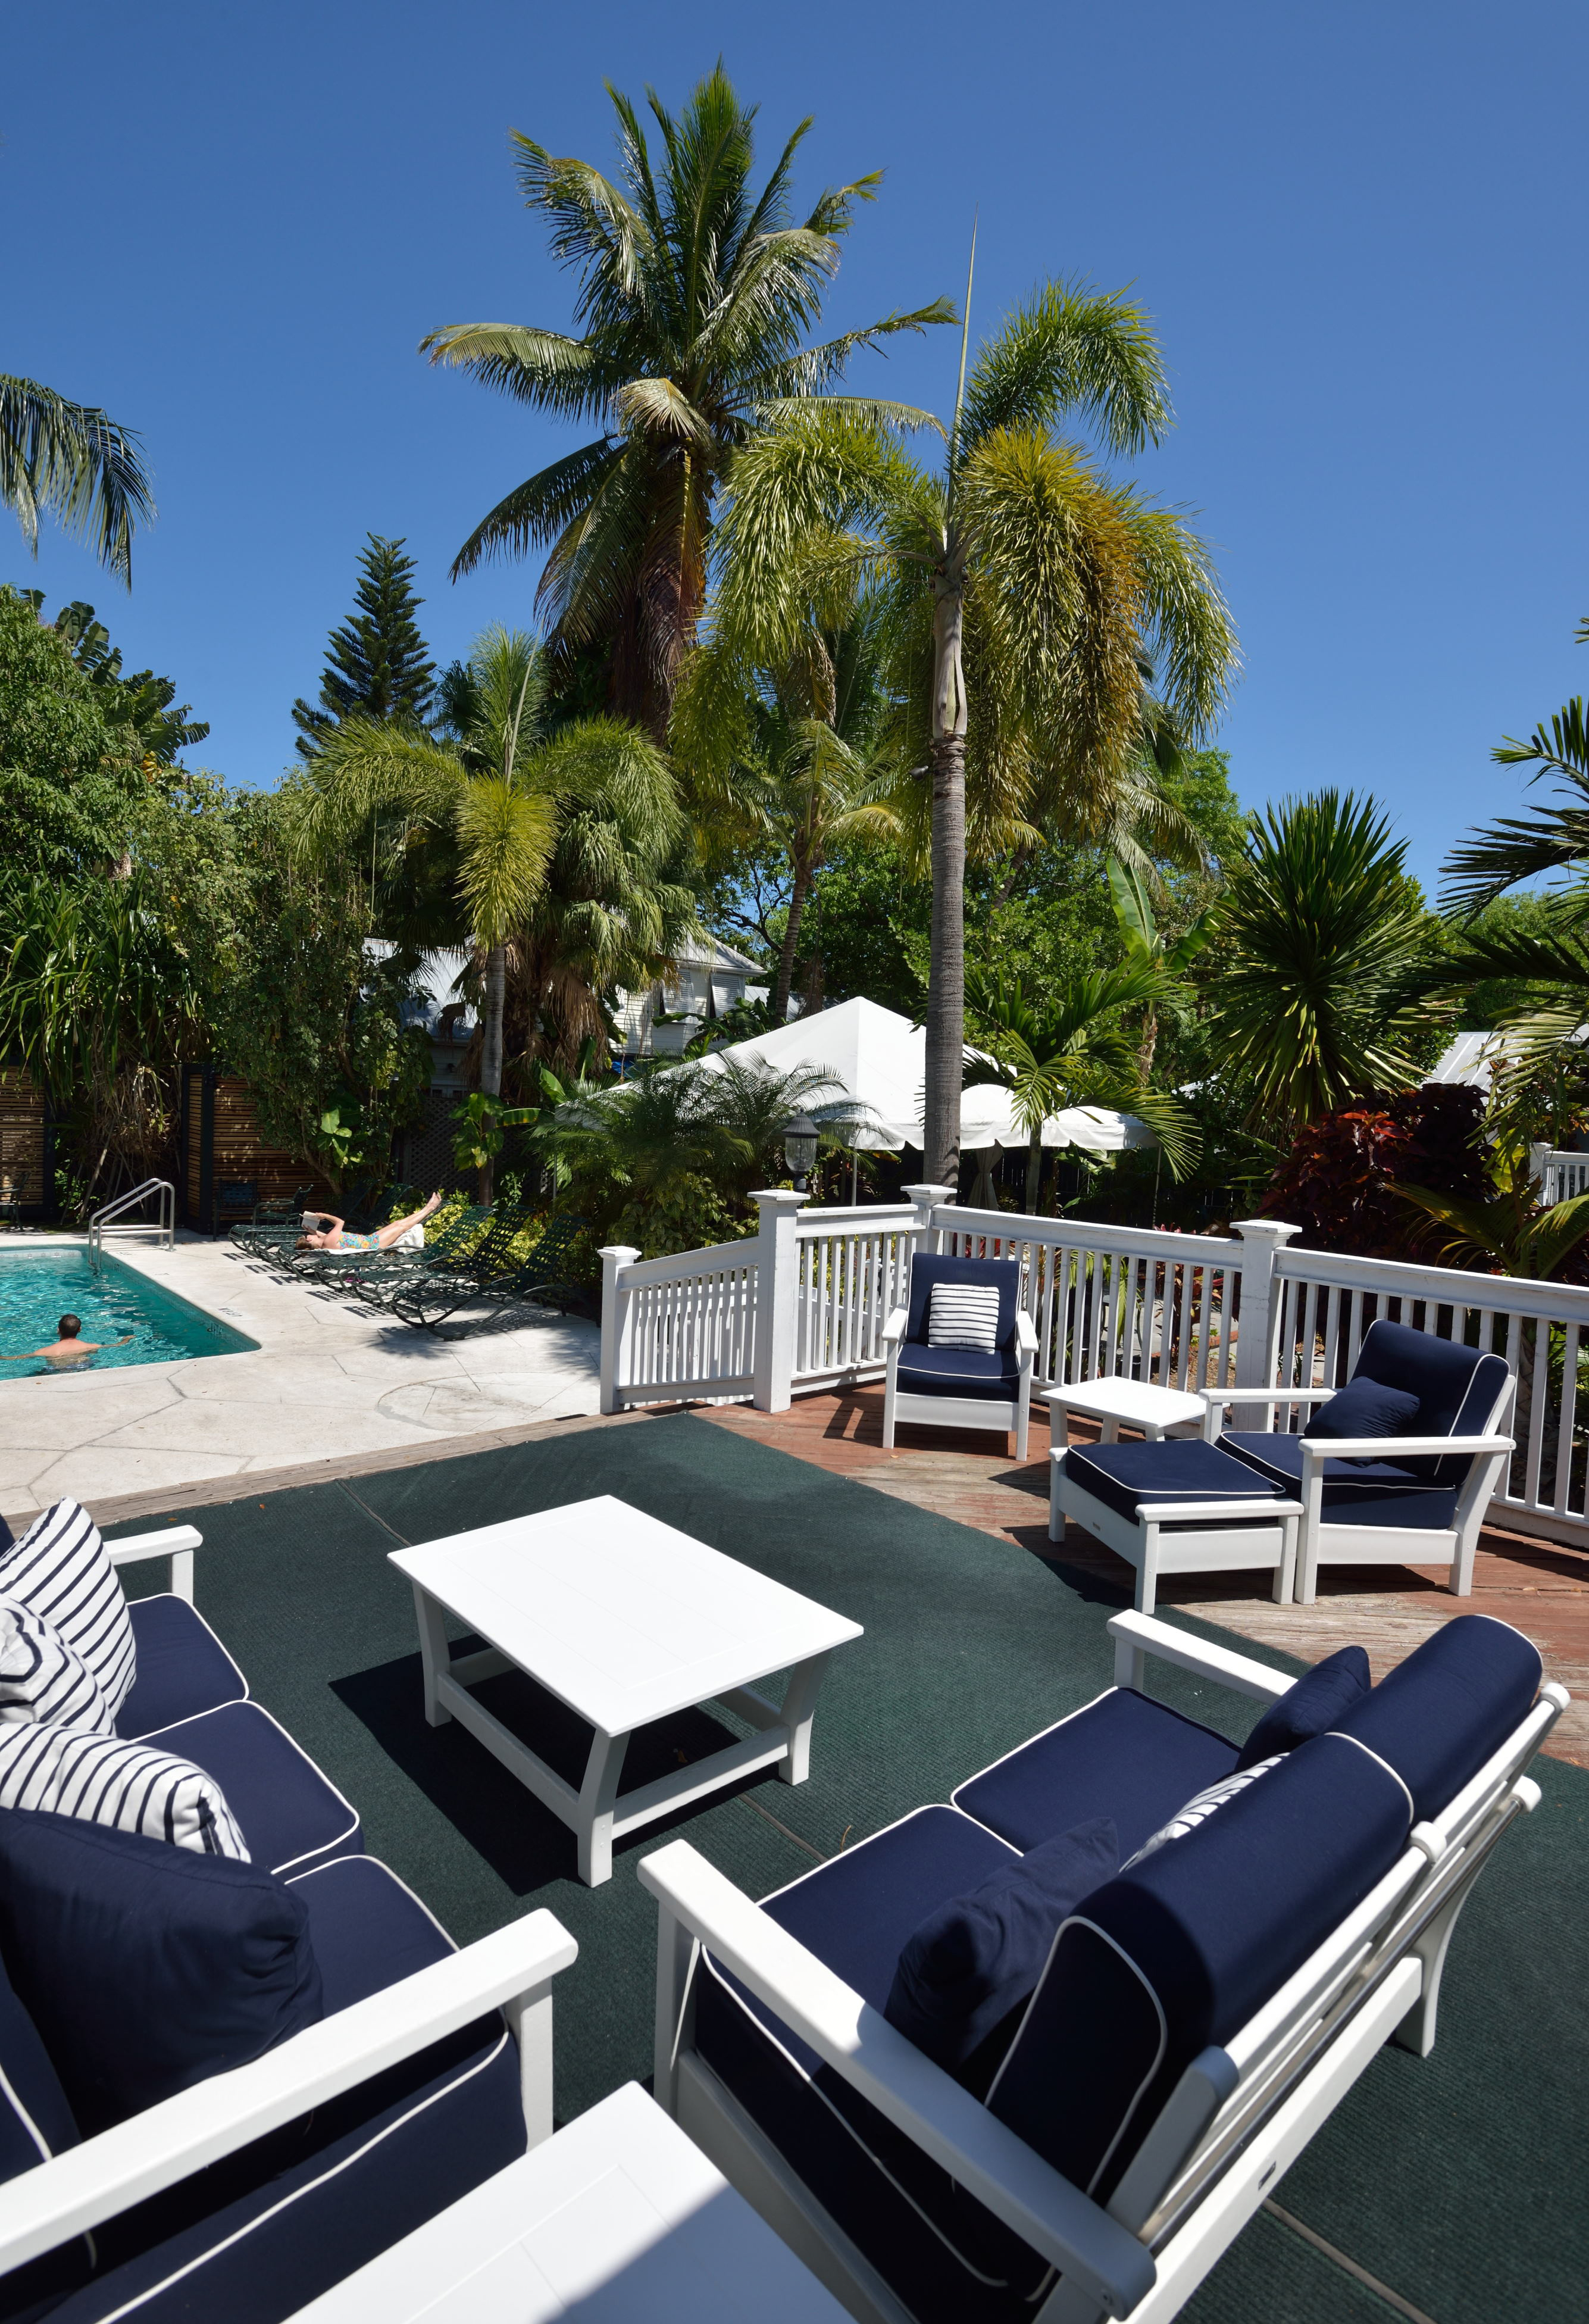 Key West hotels Looking for that perfect Key West Chelsea house key west pictures